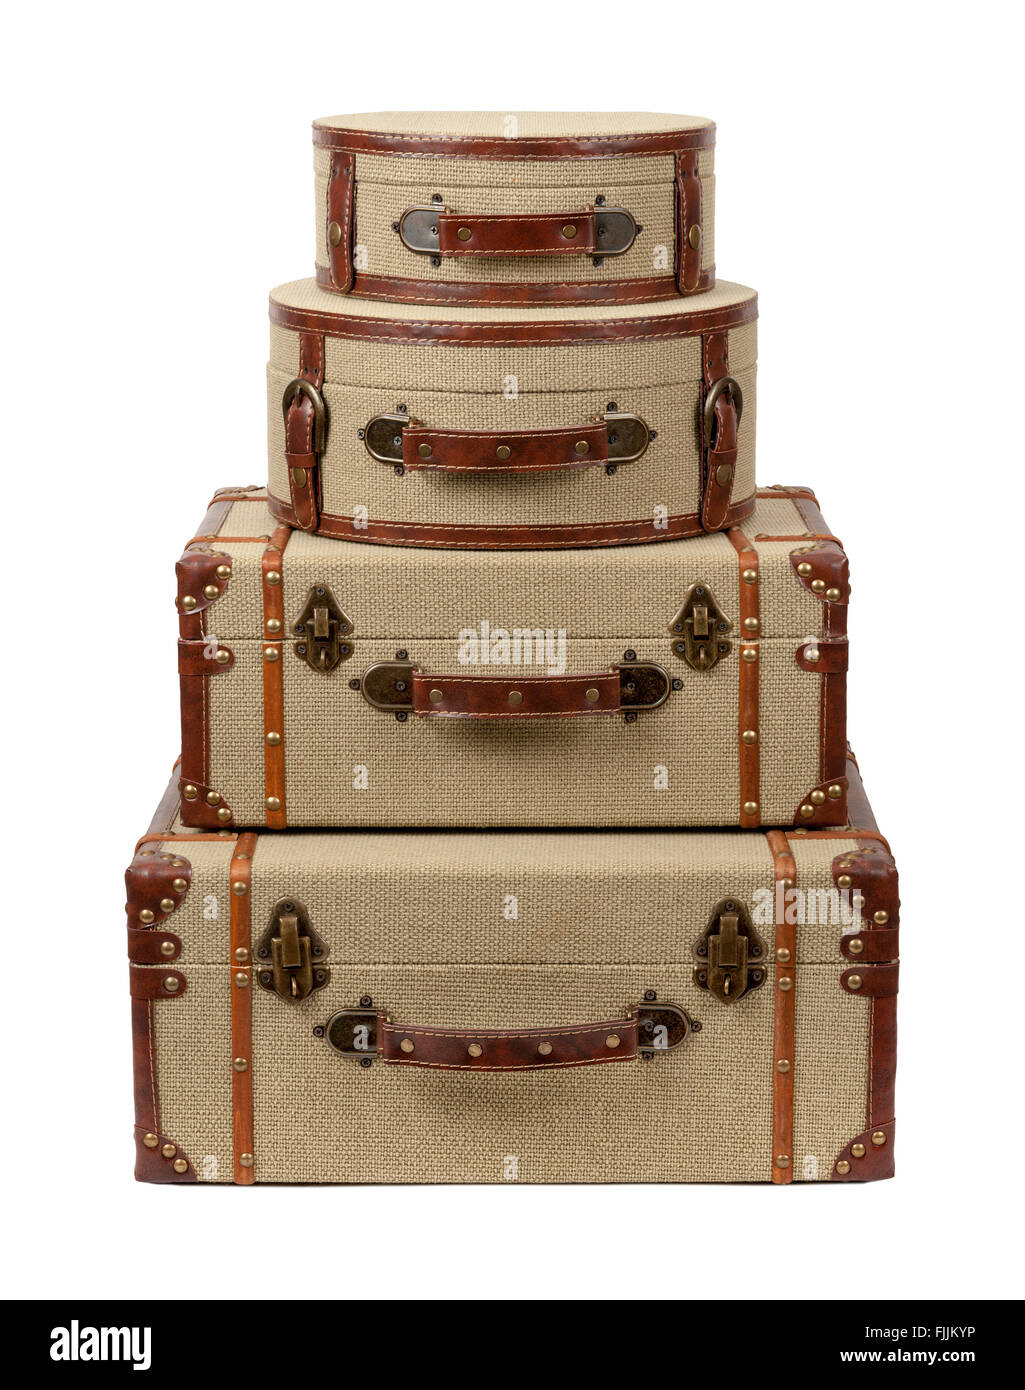 Four Stacked Deco Burlap Suitcases. The image is a cut out, isolated on a white background. - Stock Image